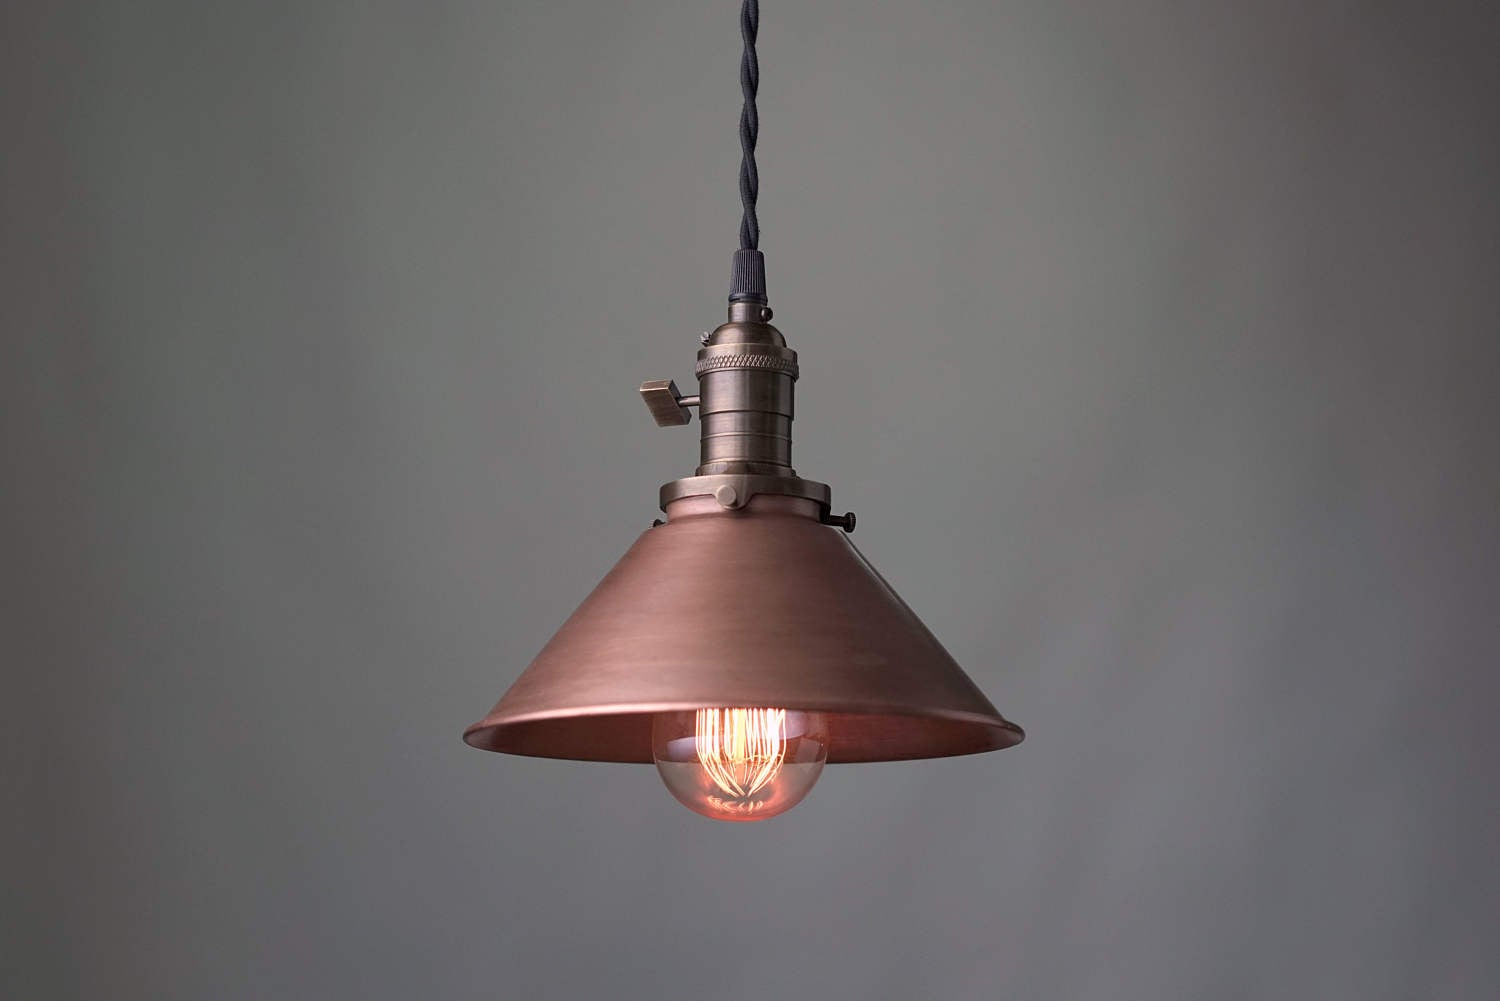 Beau Aged Copper Pendant   Industrial Pendant Light   Copper Shade   Ceilin    Peared Creation